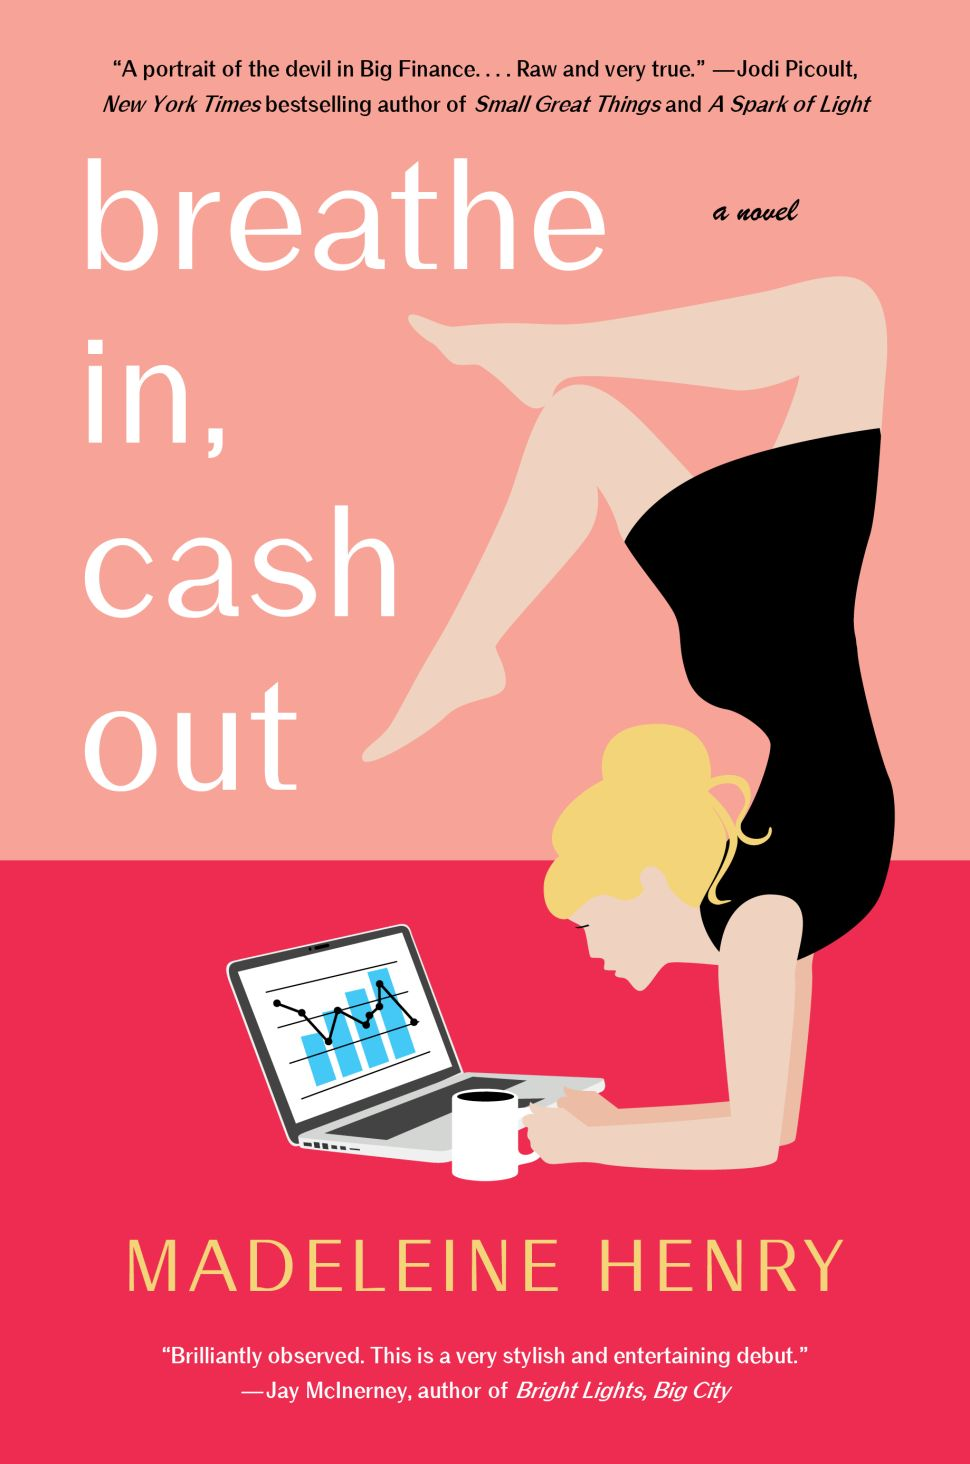 Wall Street and Wellness Butt Heads in Madeleine Henry's Debut 'Breathe In, Cash Out'